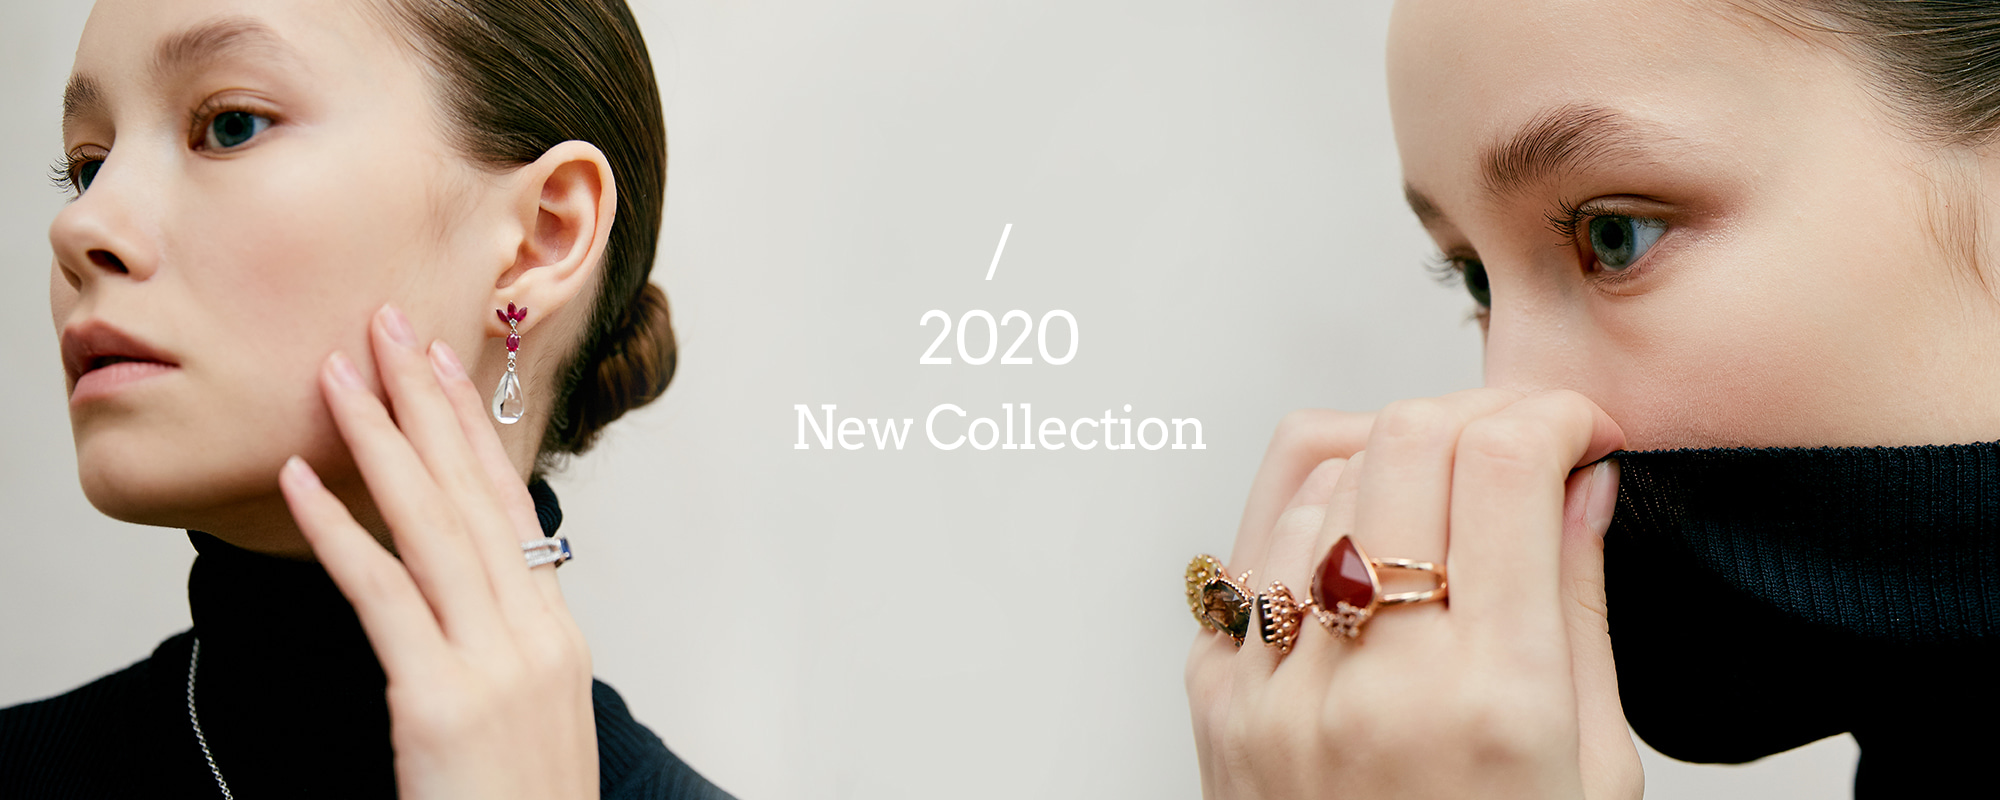 2020 new Collection